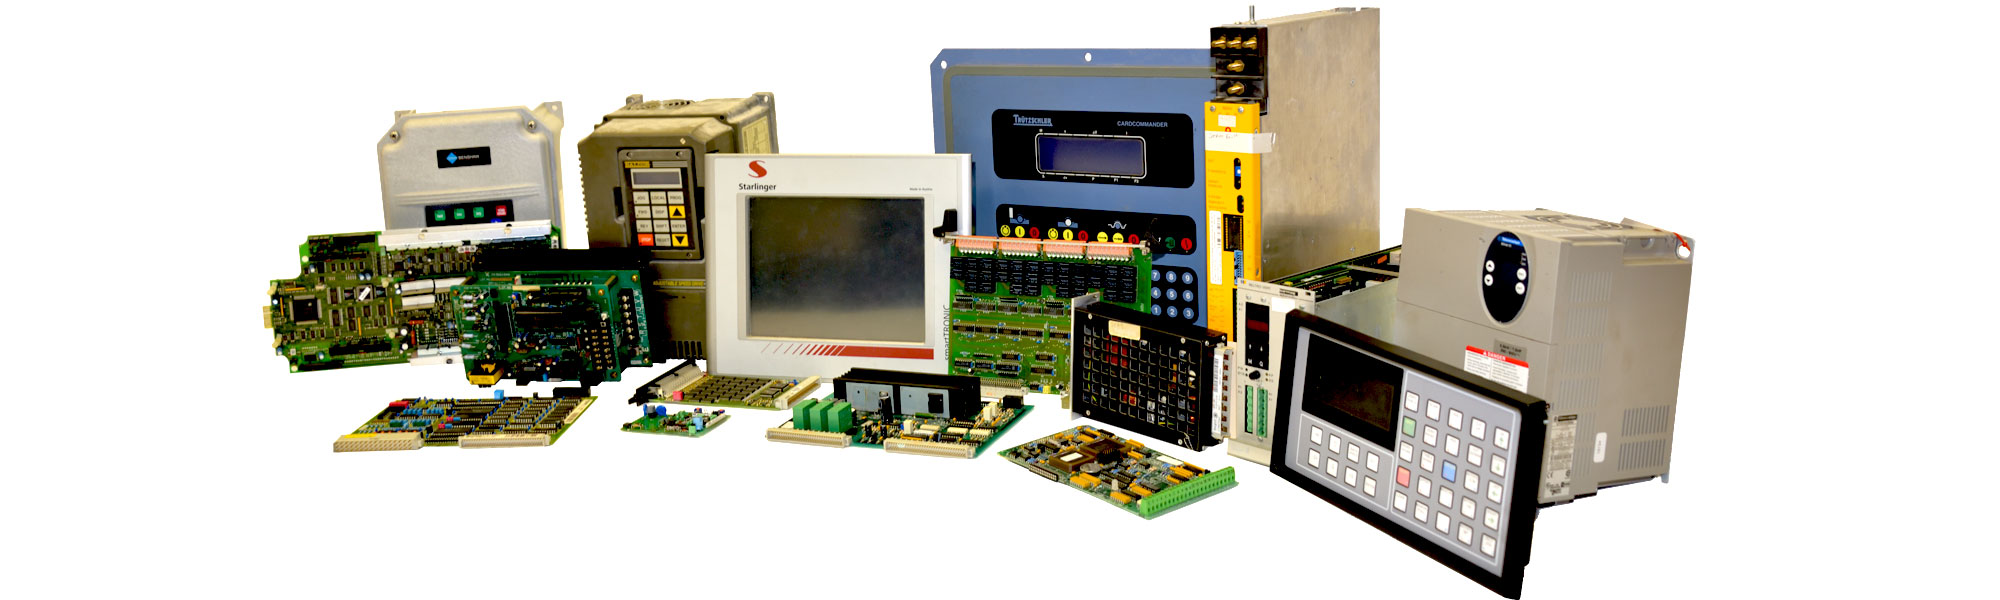 Multiple Electronic Equipment Repaired